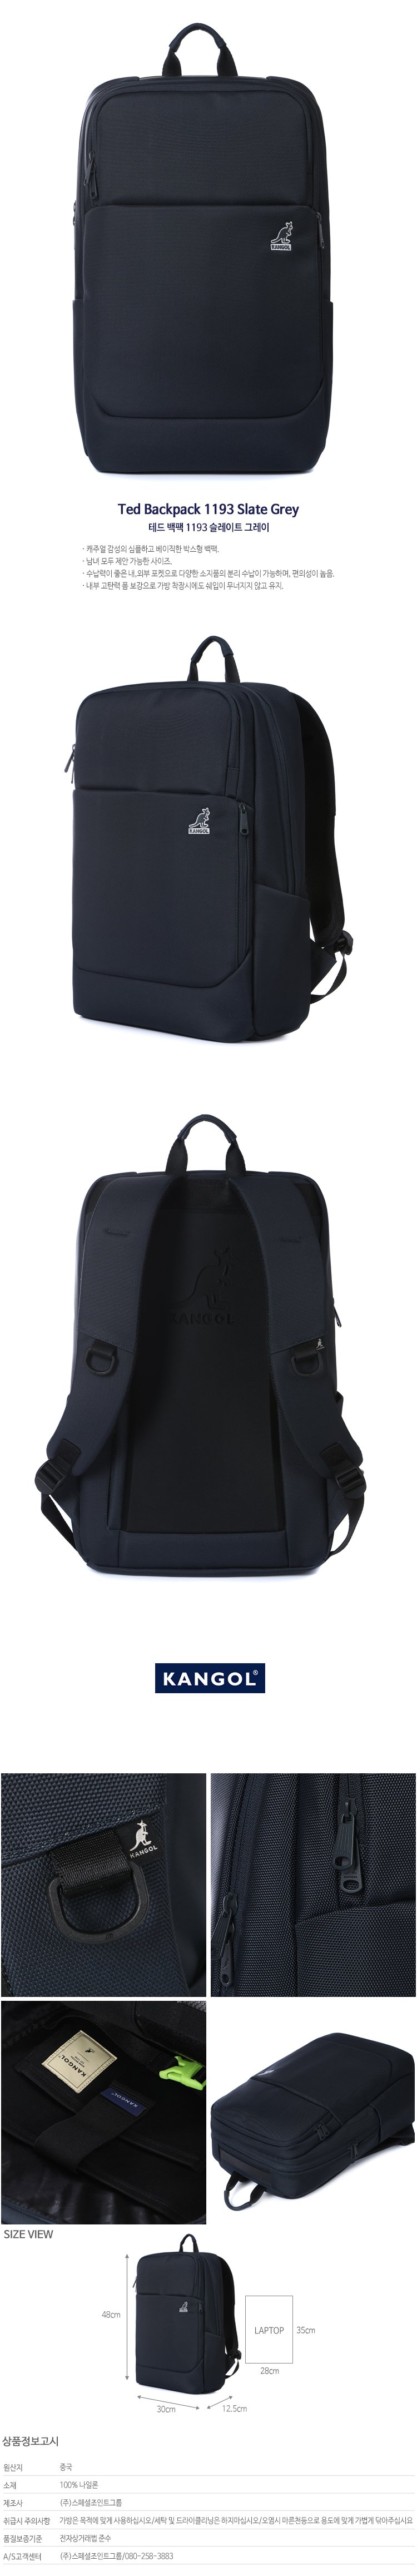 Ted Backpack 1193 SLATE GREY